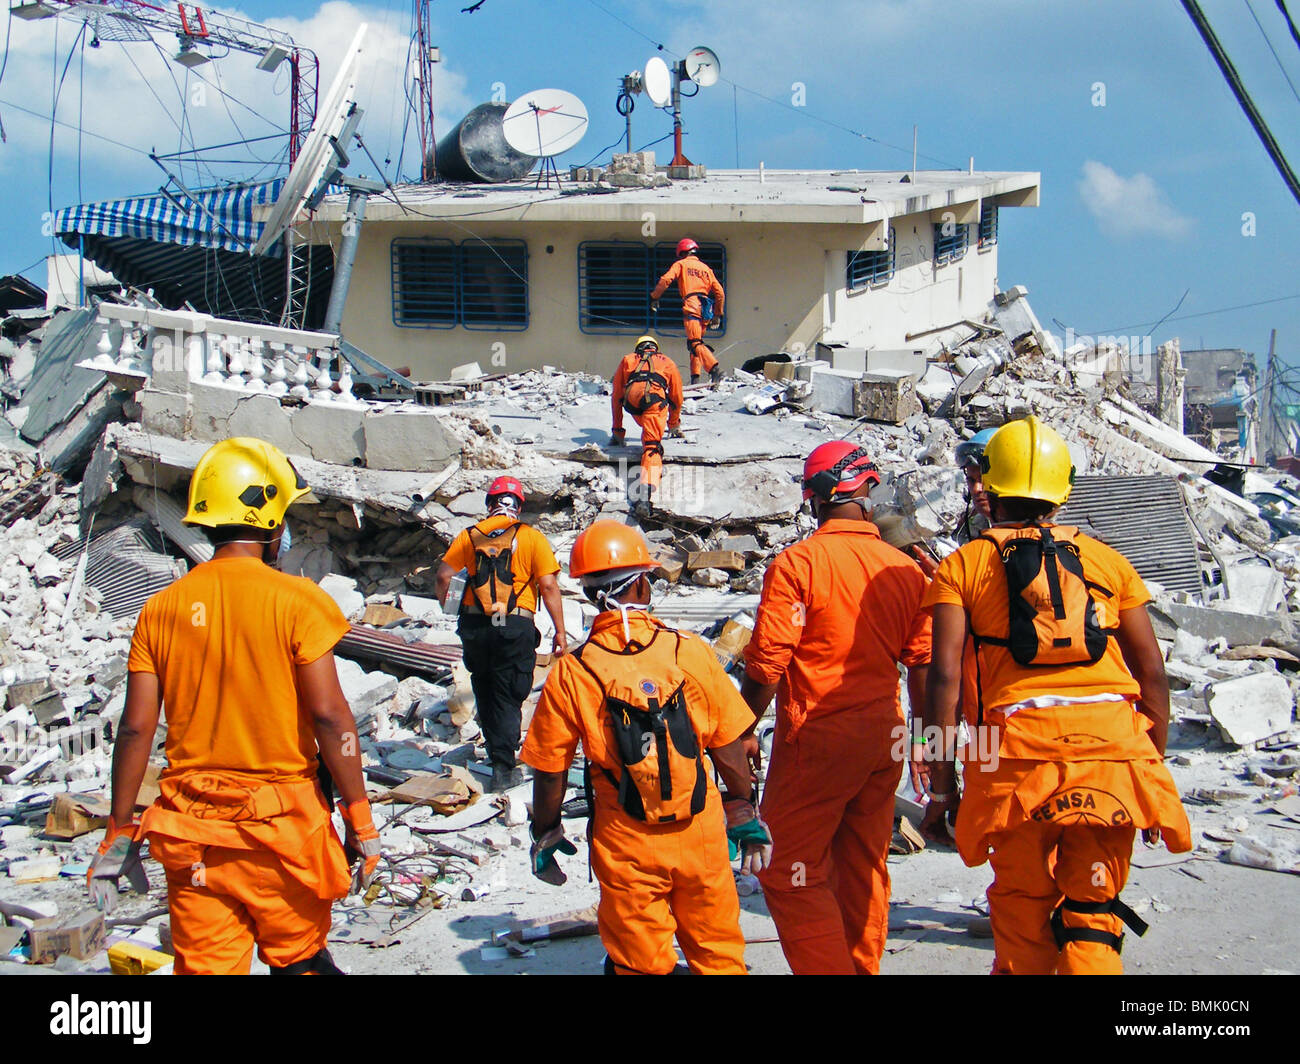 A Dominican search and rescue team searches for survivors in the rubble in Port au Prince, after the Haiti earthquake - Stock Image